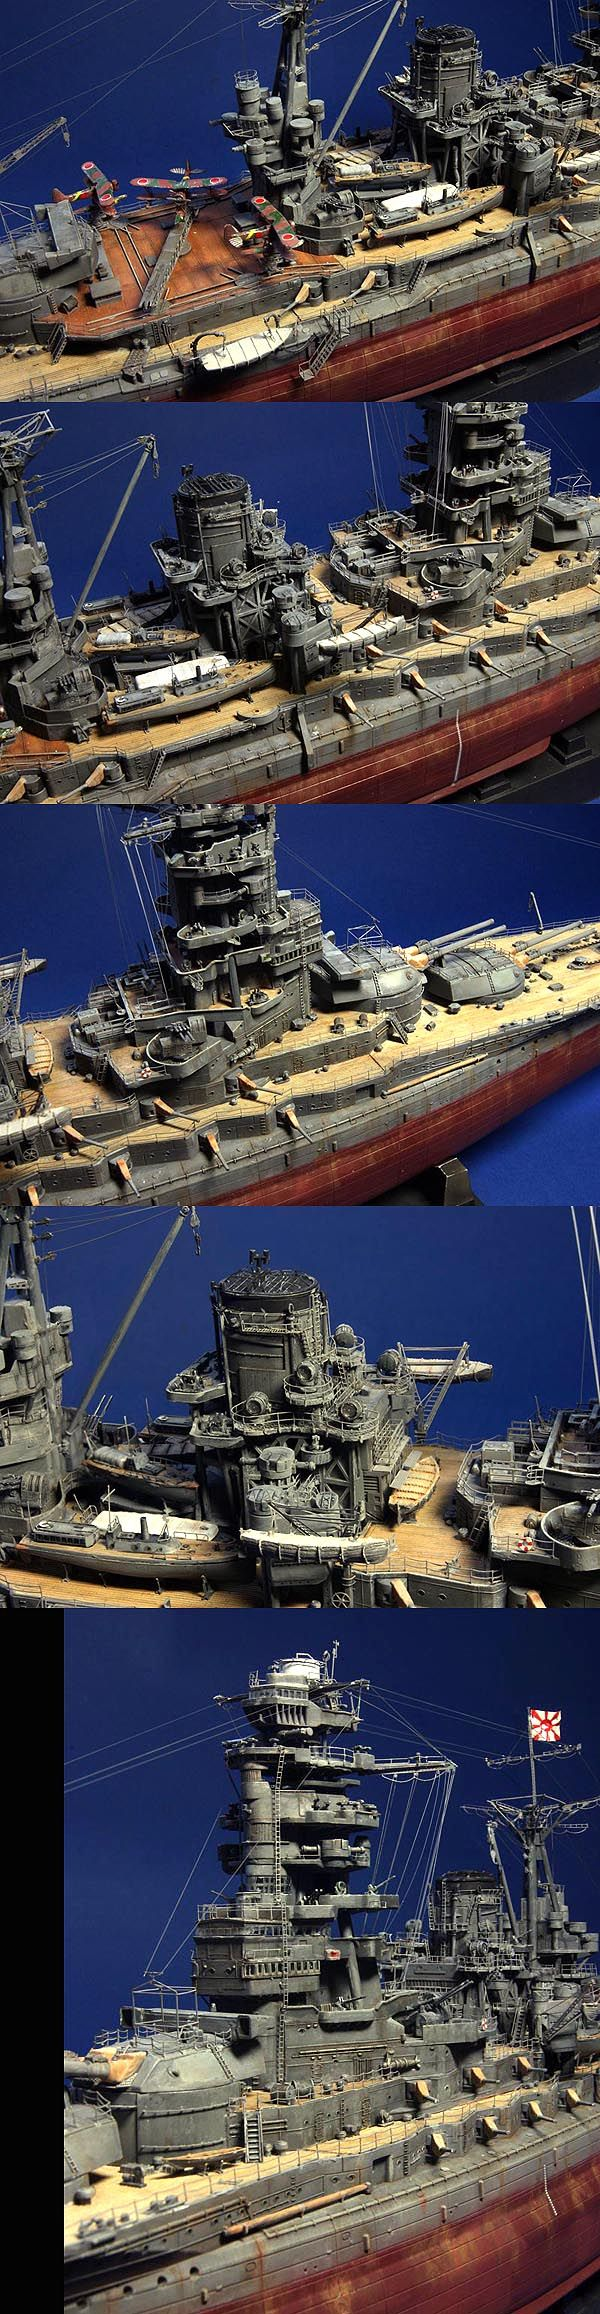 Nagato IJN Battleship 1/350 Scale Model